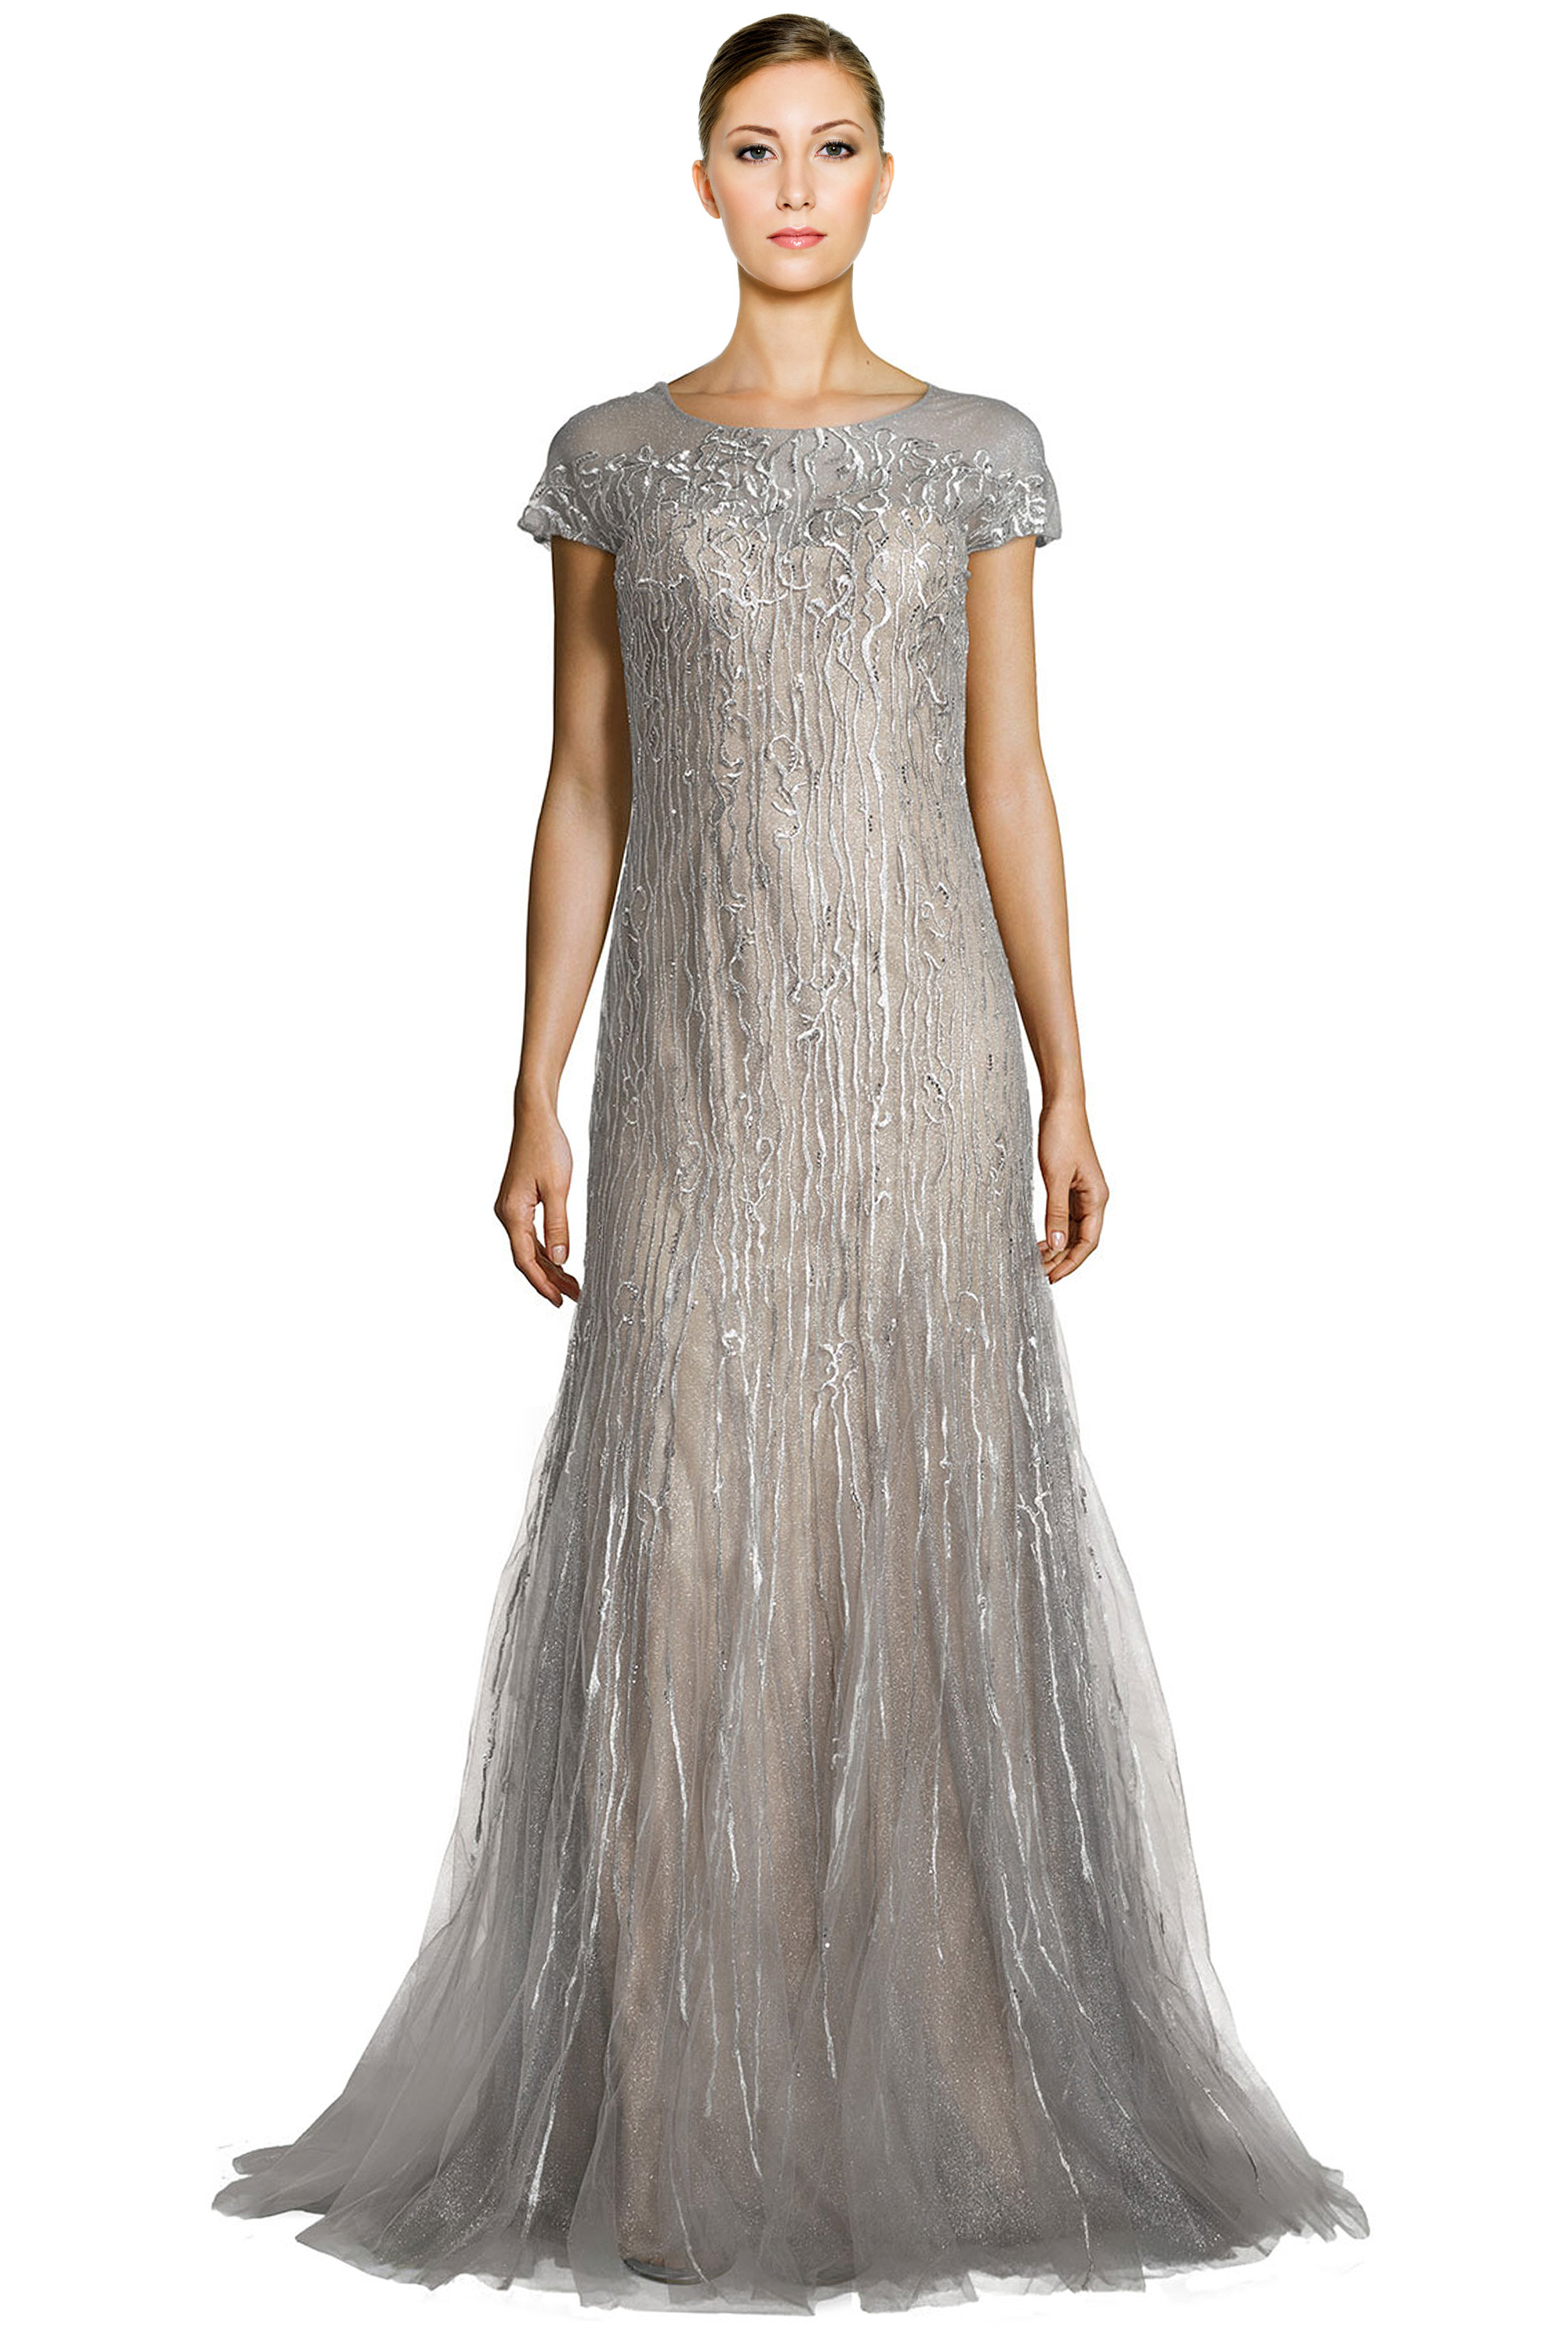 Rene Ruiz Silver Embellished Tulle Illusion Godet Evening Gown Dress ...